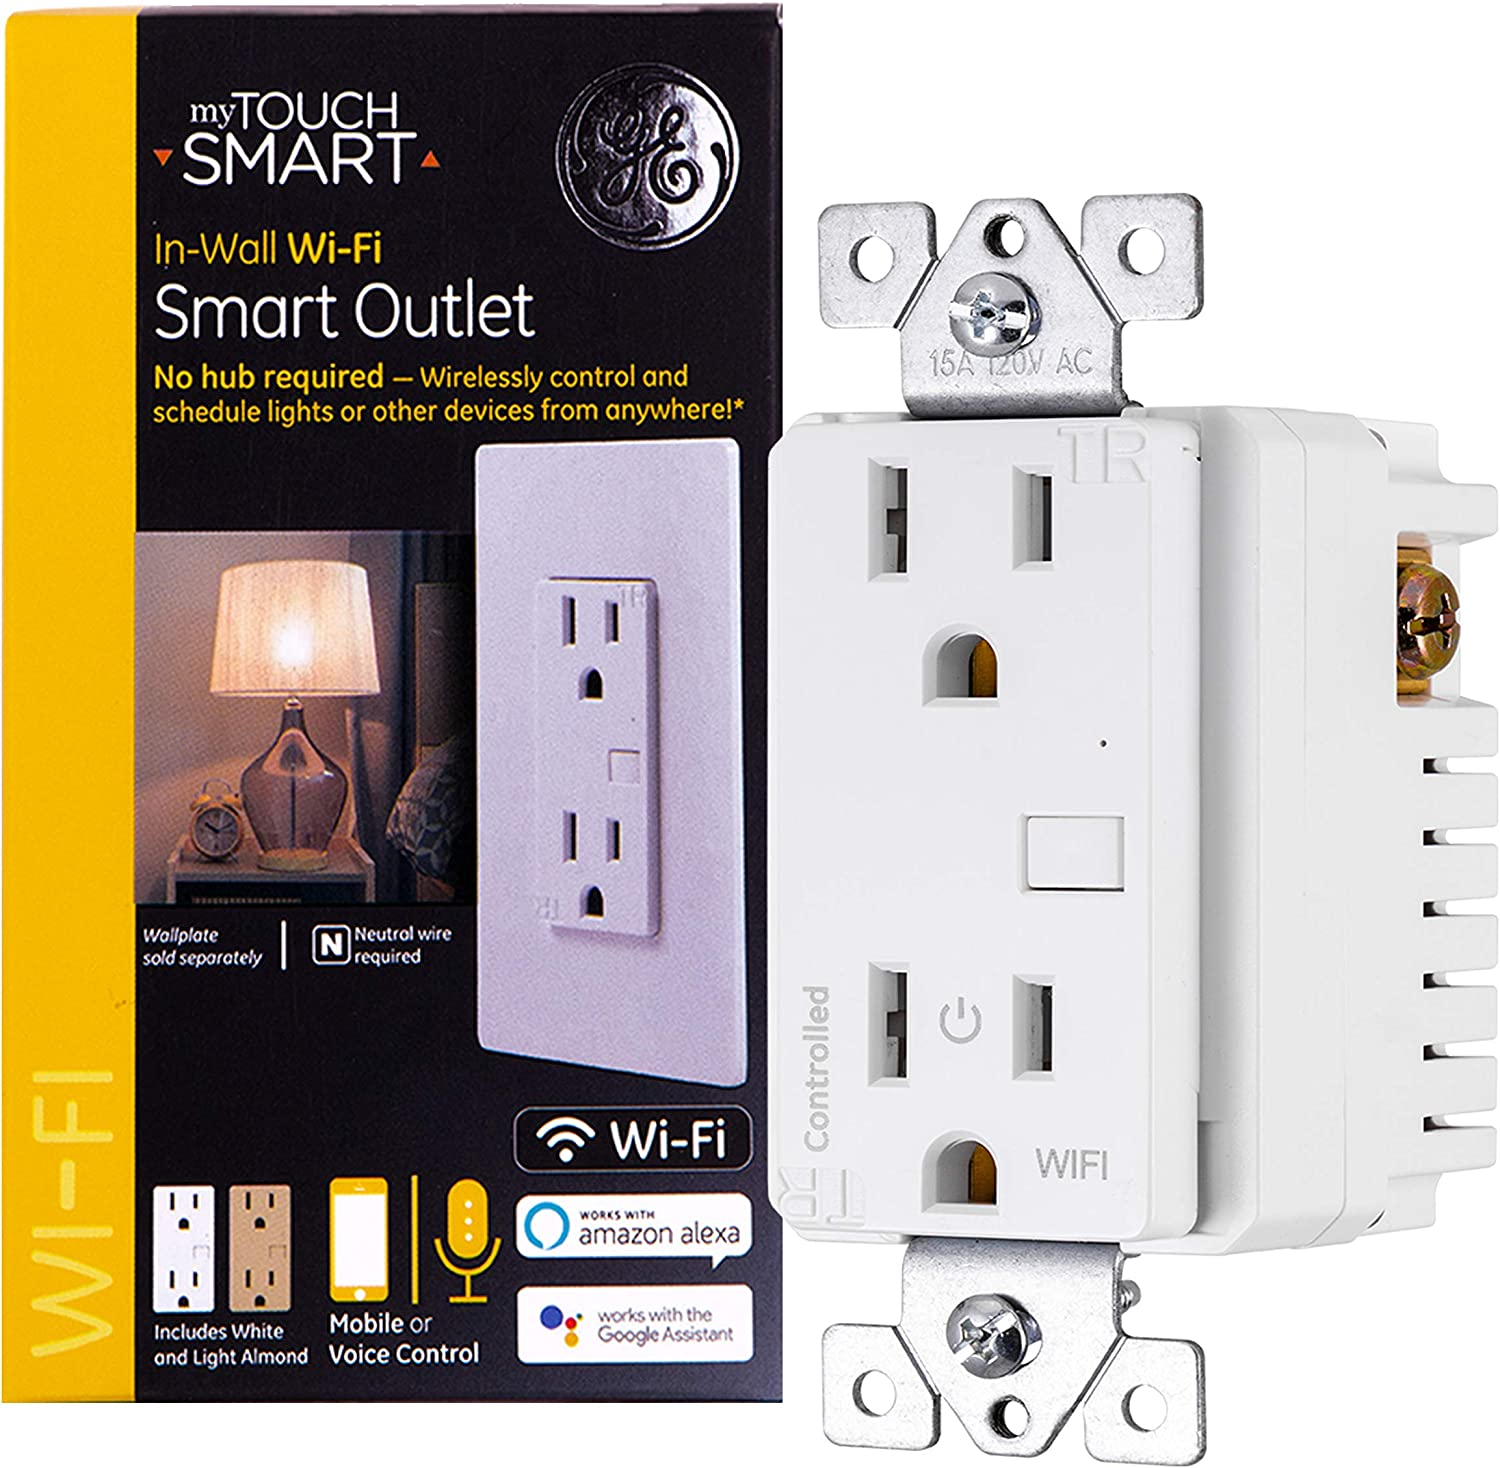 GE myTouchSmart WiFi Smart Light Outlet Receptacle, Tamper-Resistant, Works with Alexa, Google Assistant, 2.4GHz, No Hub Needed, Neutral Wire Required, White & Light Almond, 40795